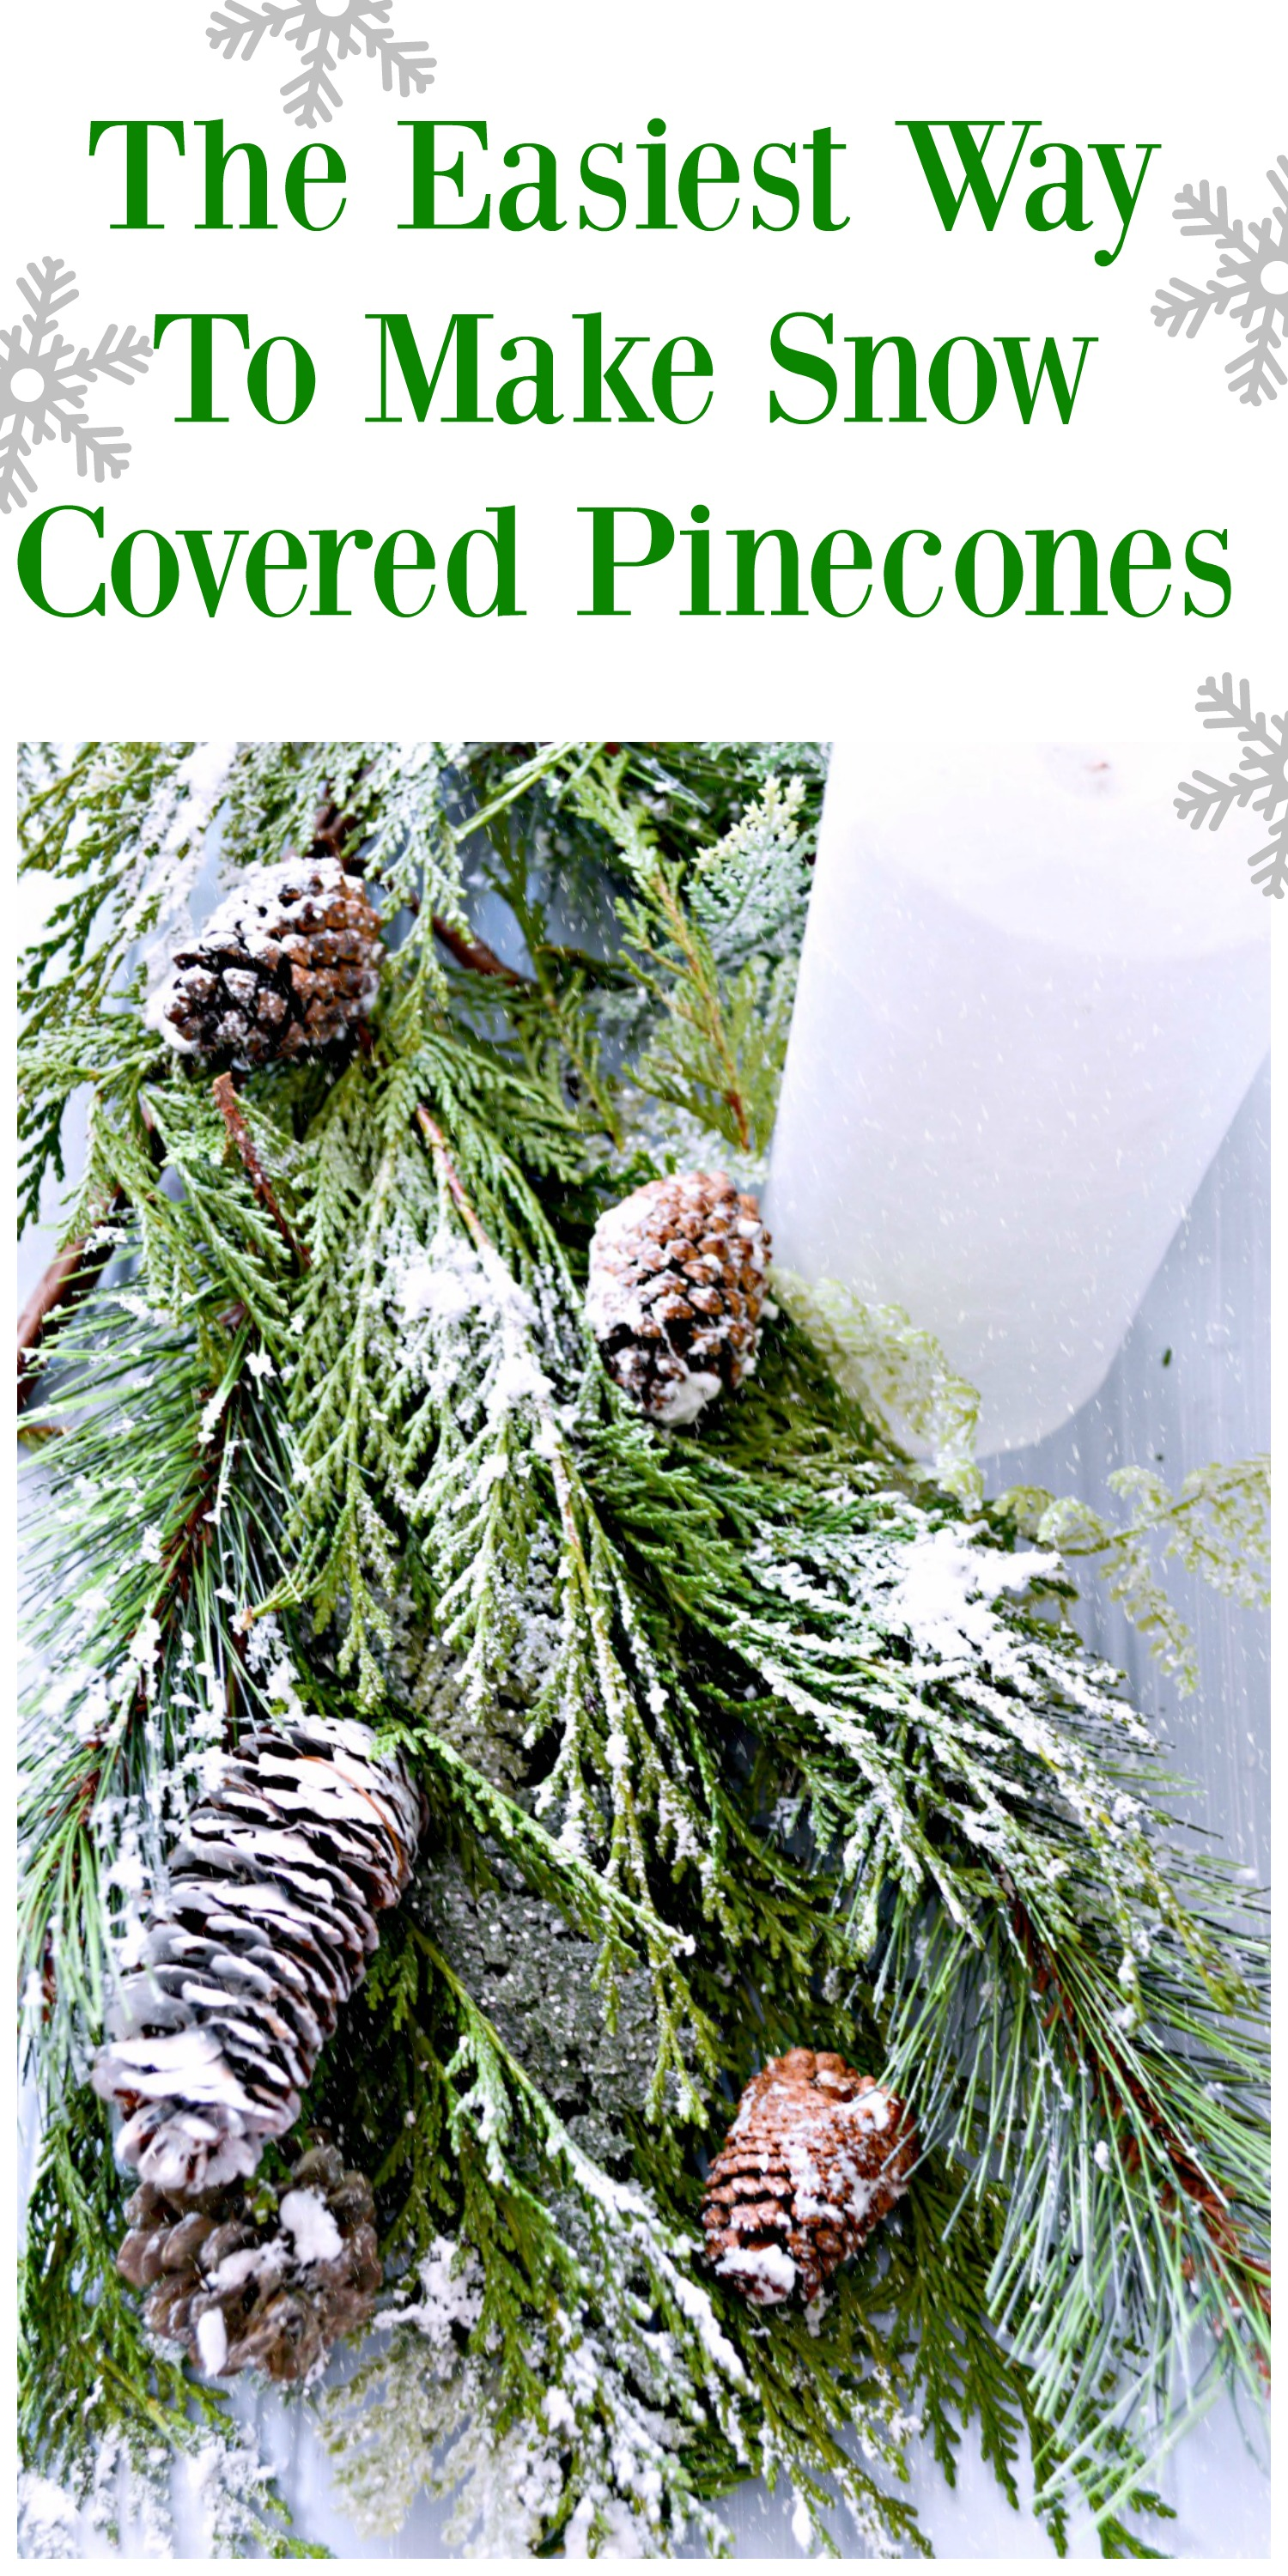 such-a-simple-trick-to-make-snow-covered-greenery-and-pinecones